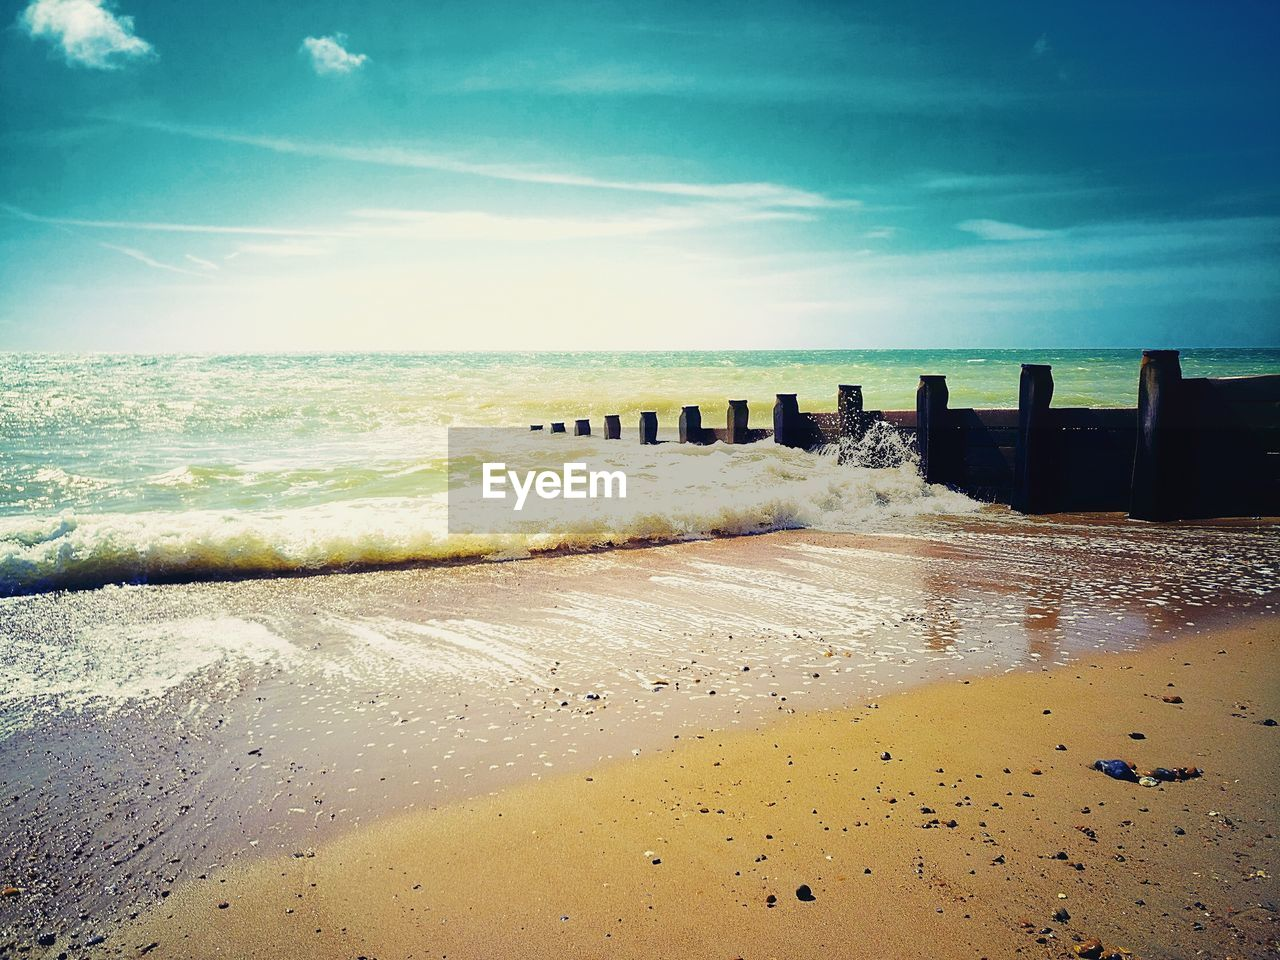 water, beach, sea, land, sky, wave, scenics - nature, horizon over water, motion, sand, beauty in nature, horizon, cloud - sky, nature, tranquil scene, tranquility, day, aquatic sport, surfing, wooden post, post, outdoors, groyne